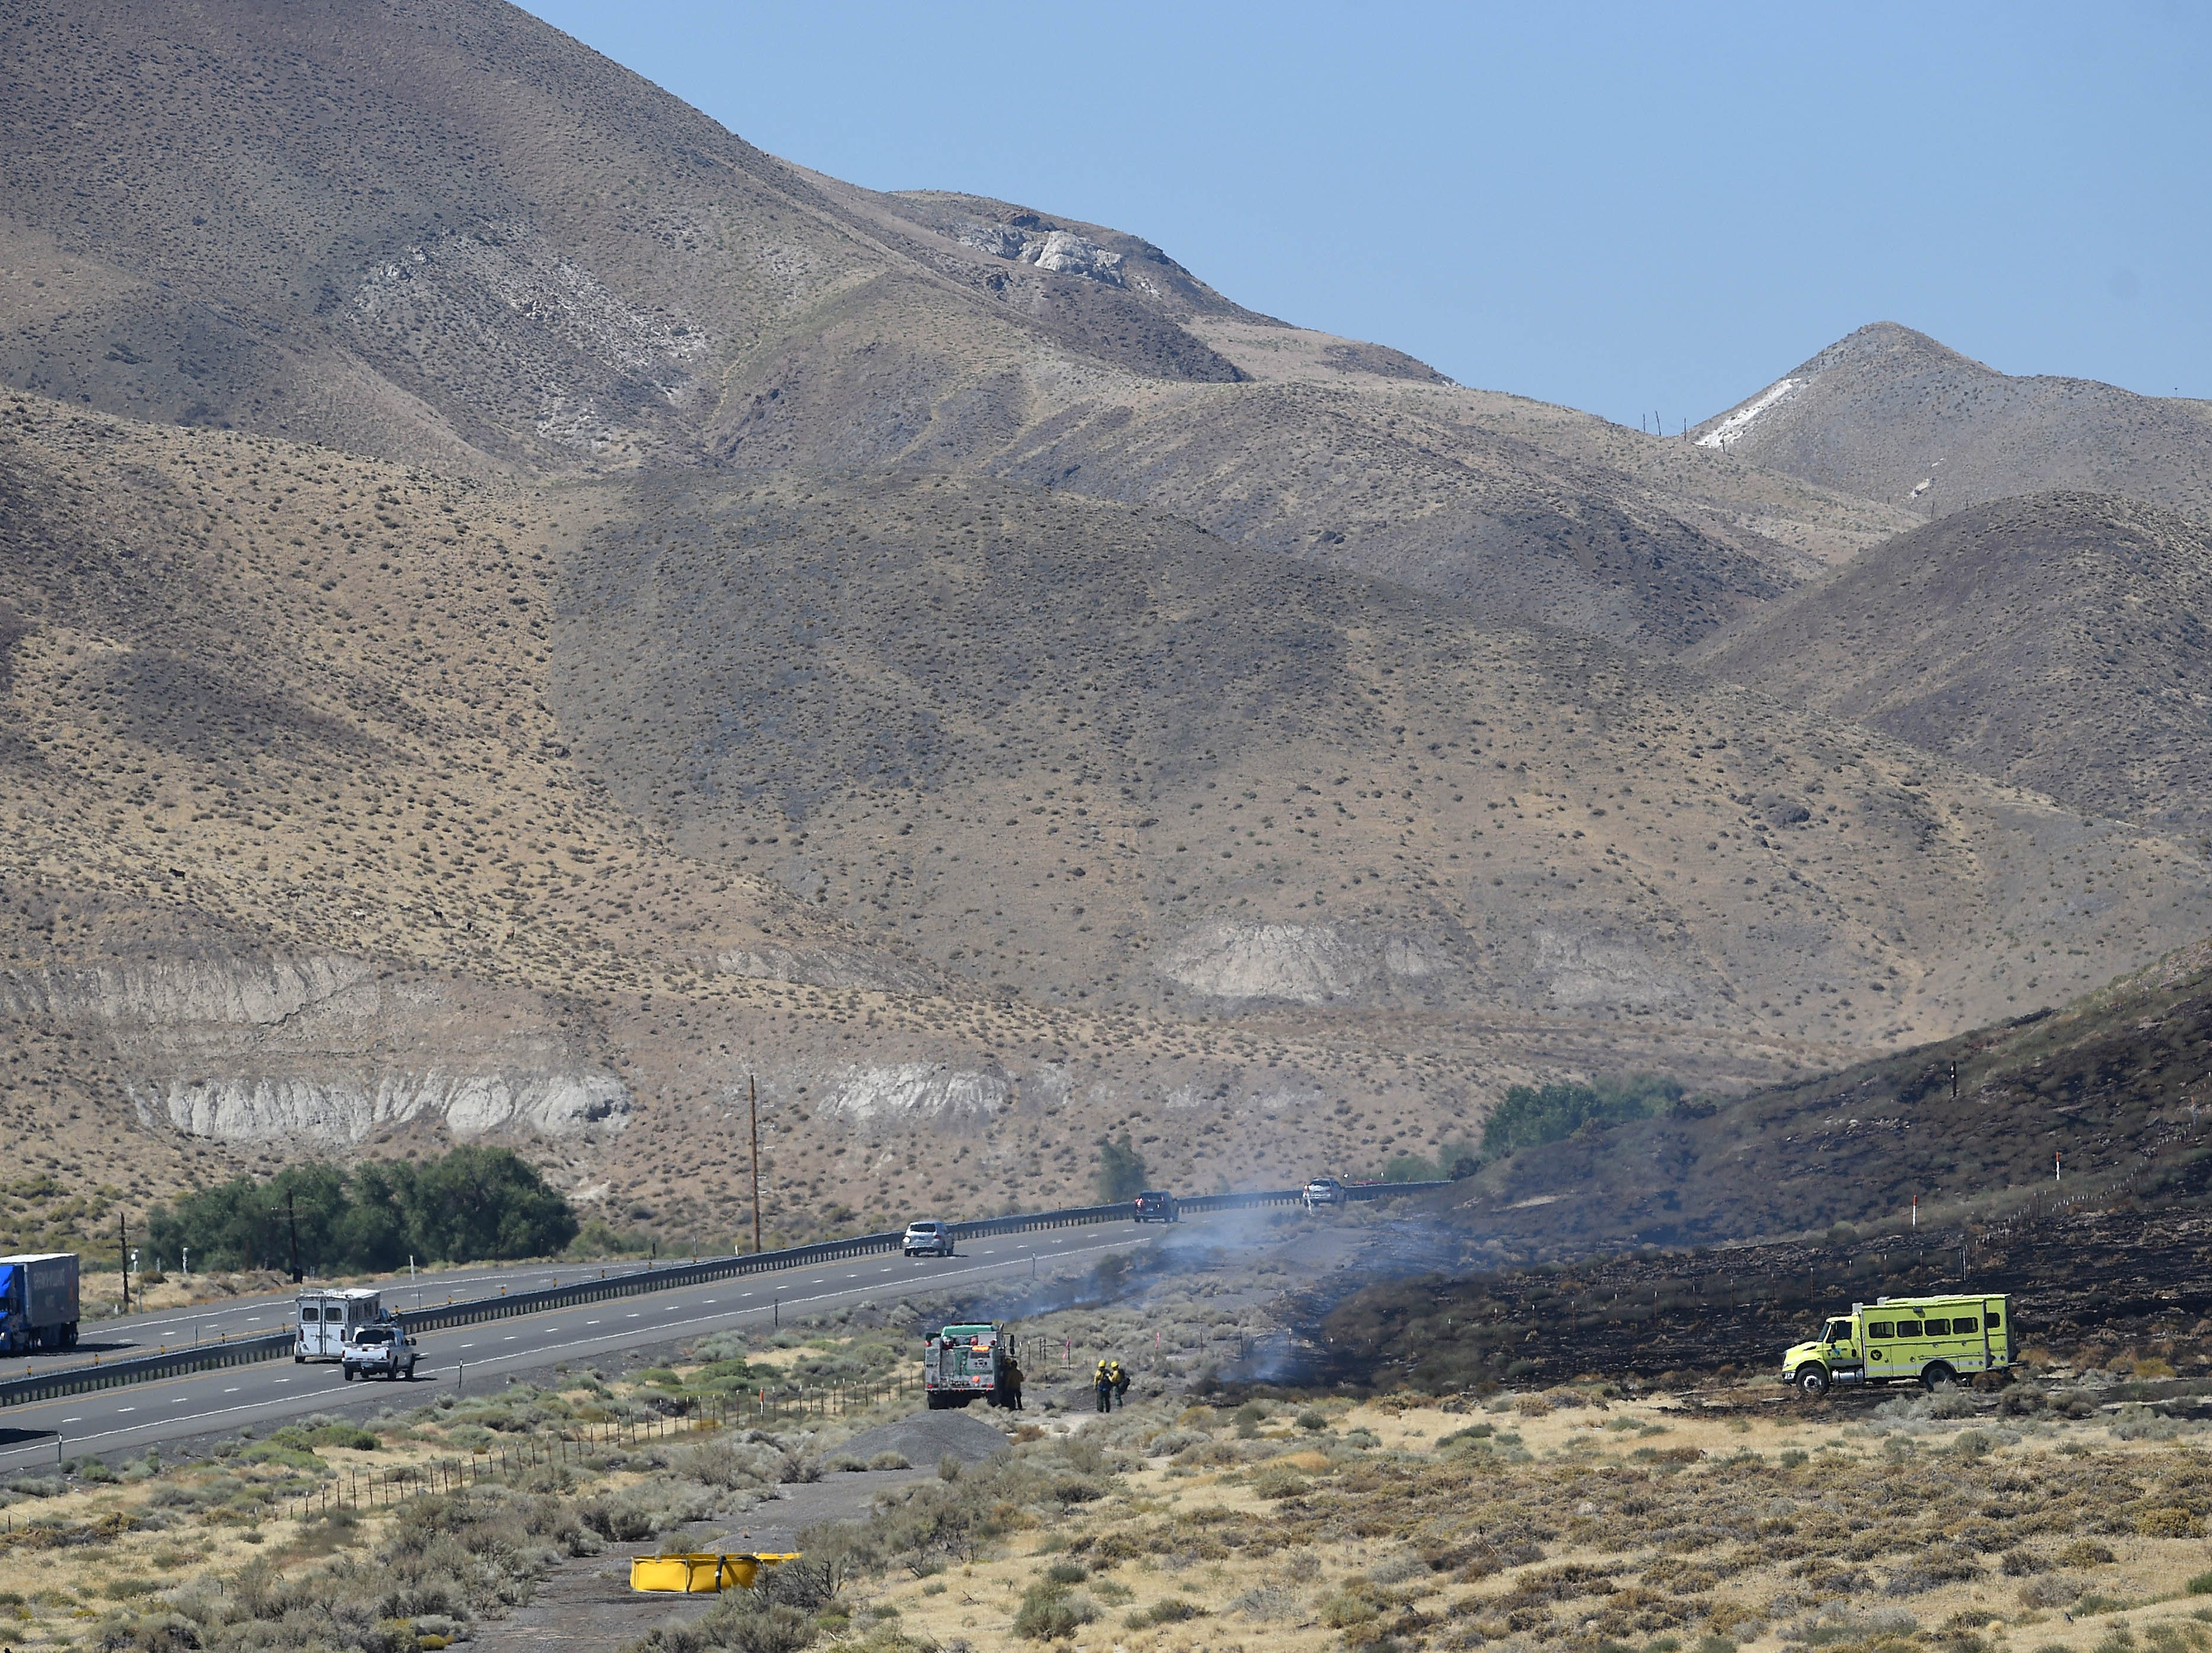 Crews work to contain a small brush fire along the north side of I-80 next to Derby Dam on Sept. 11, 2018.